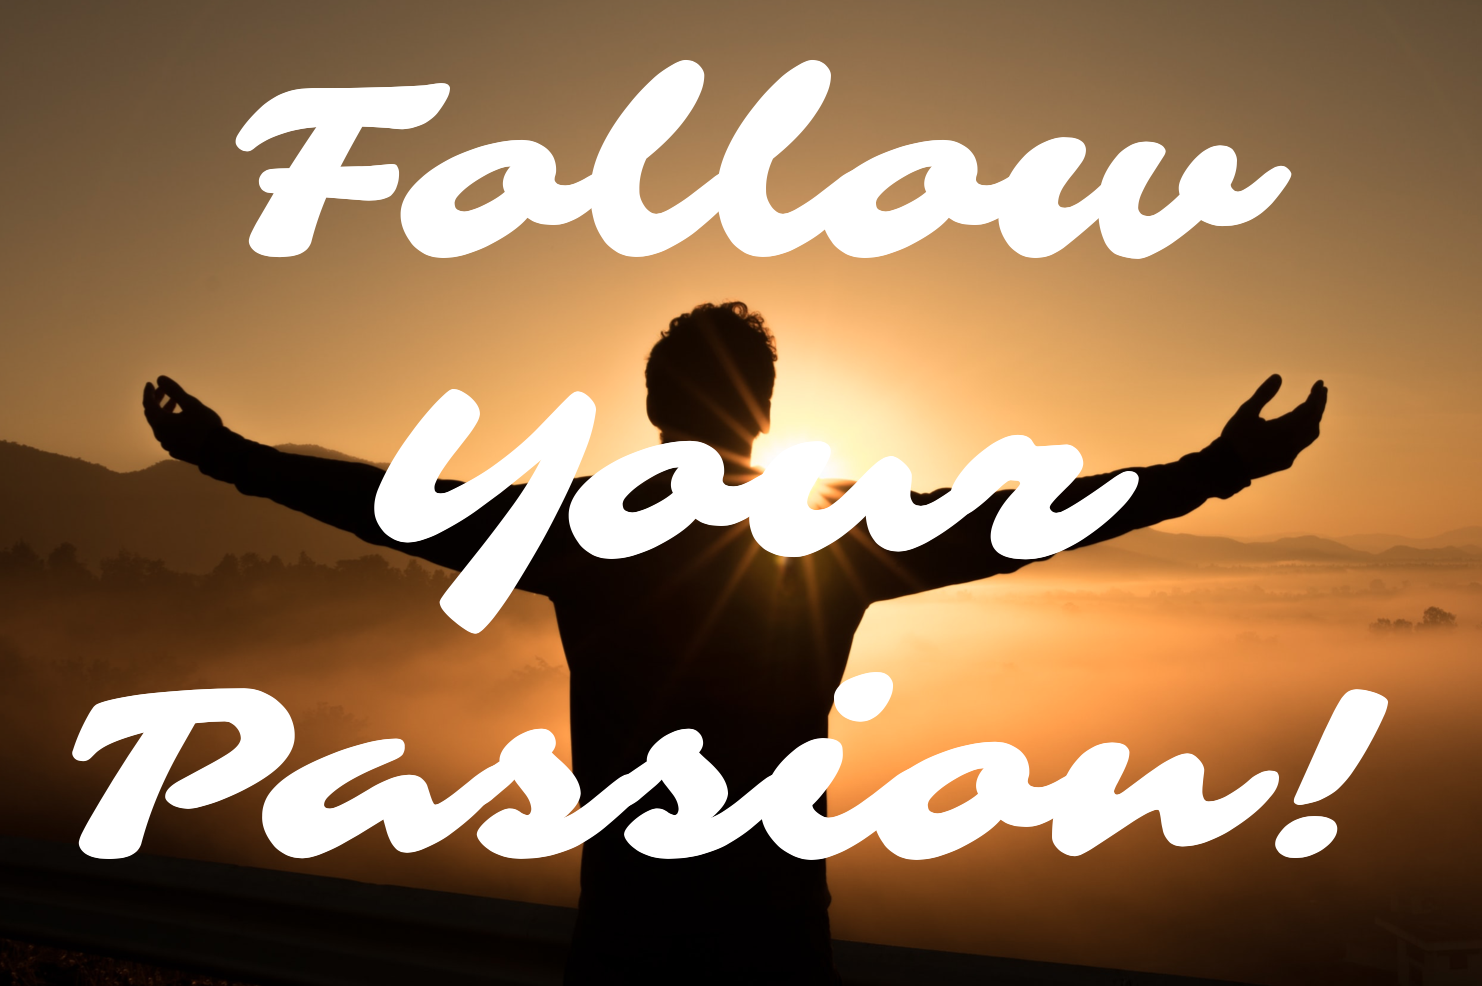 Follow your passion (cue sunset)